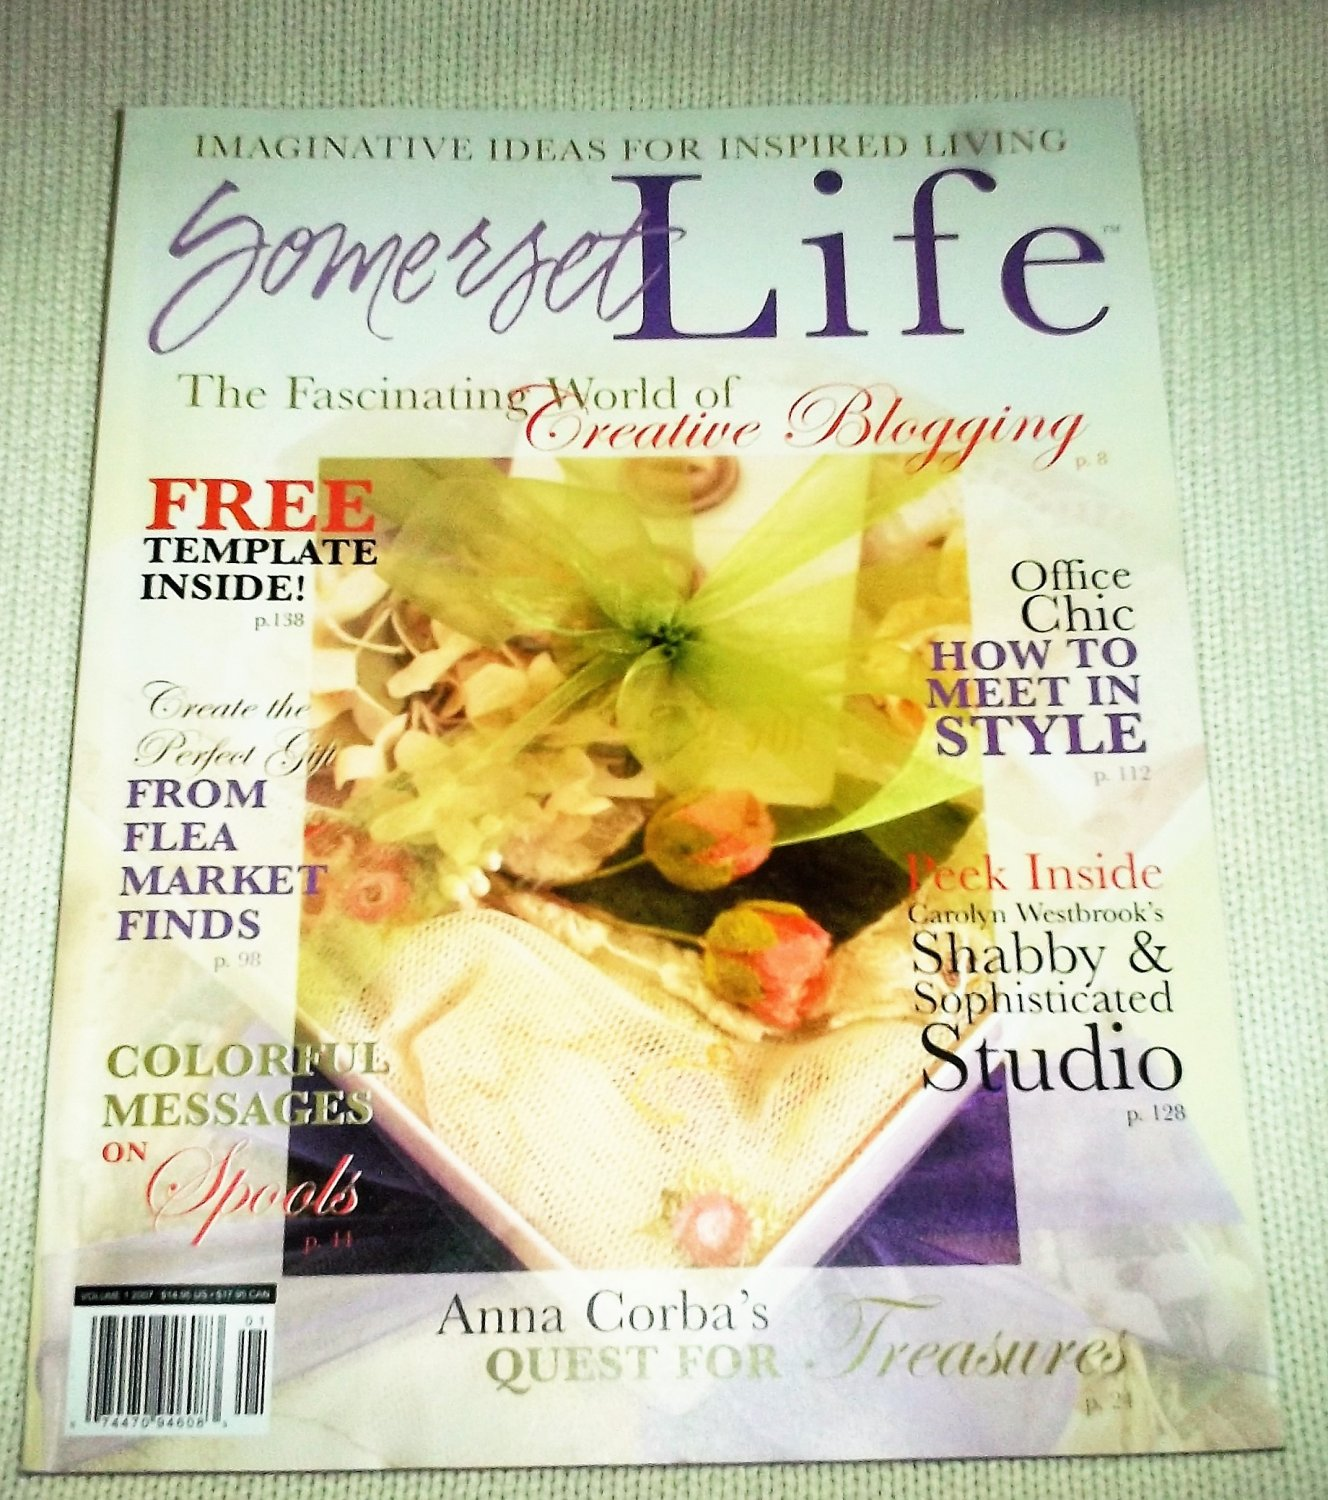 SOMERSET Life MAGAZINE Vol. 1 2007 Creative Blogging First Issue MIXED MEDIA ALTERED ART